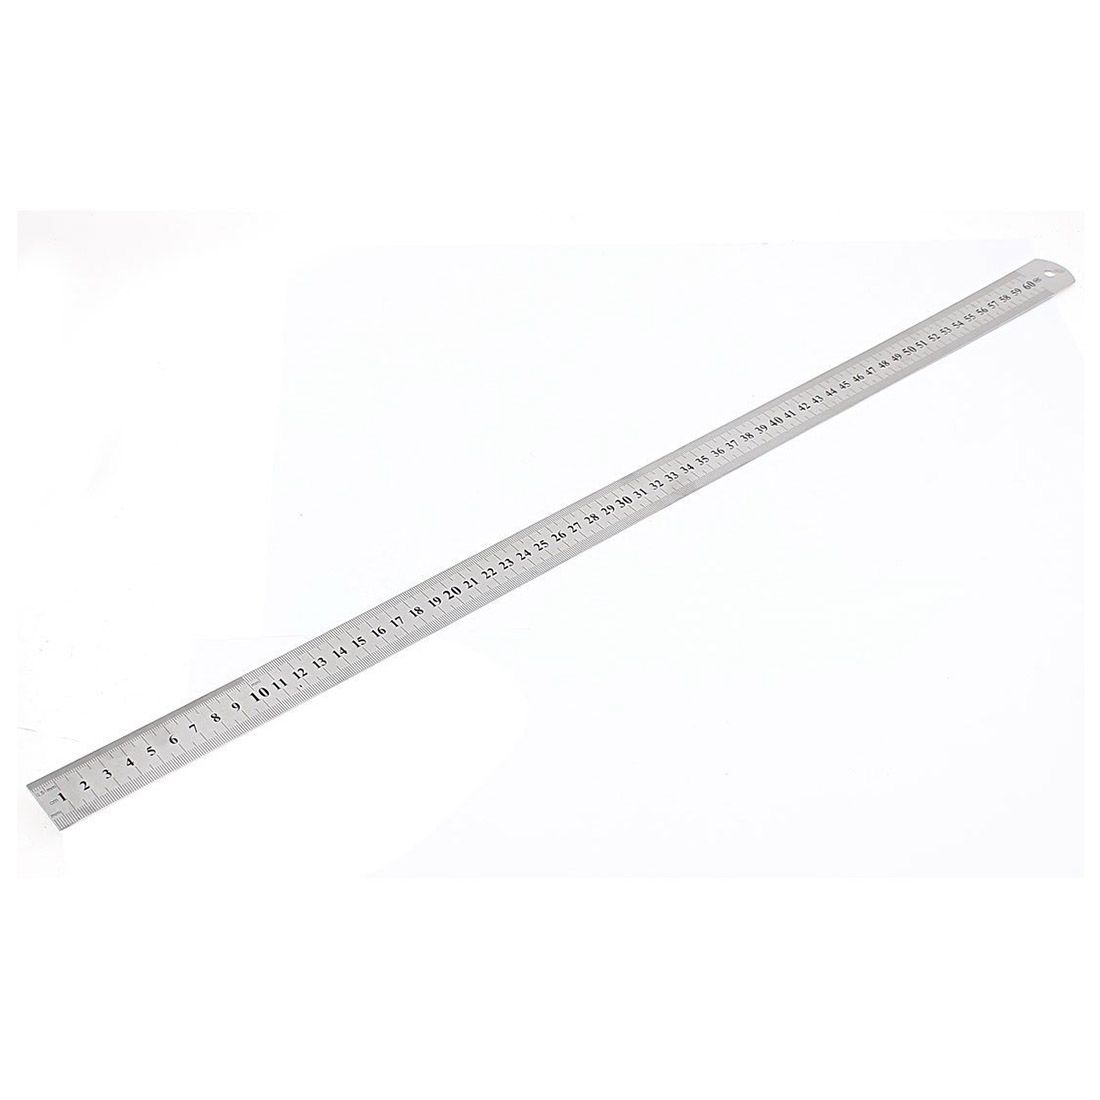 Stainless Steel Double Side Measuring Straight Edge Ruler 60cm/24, Silver